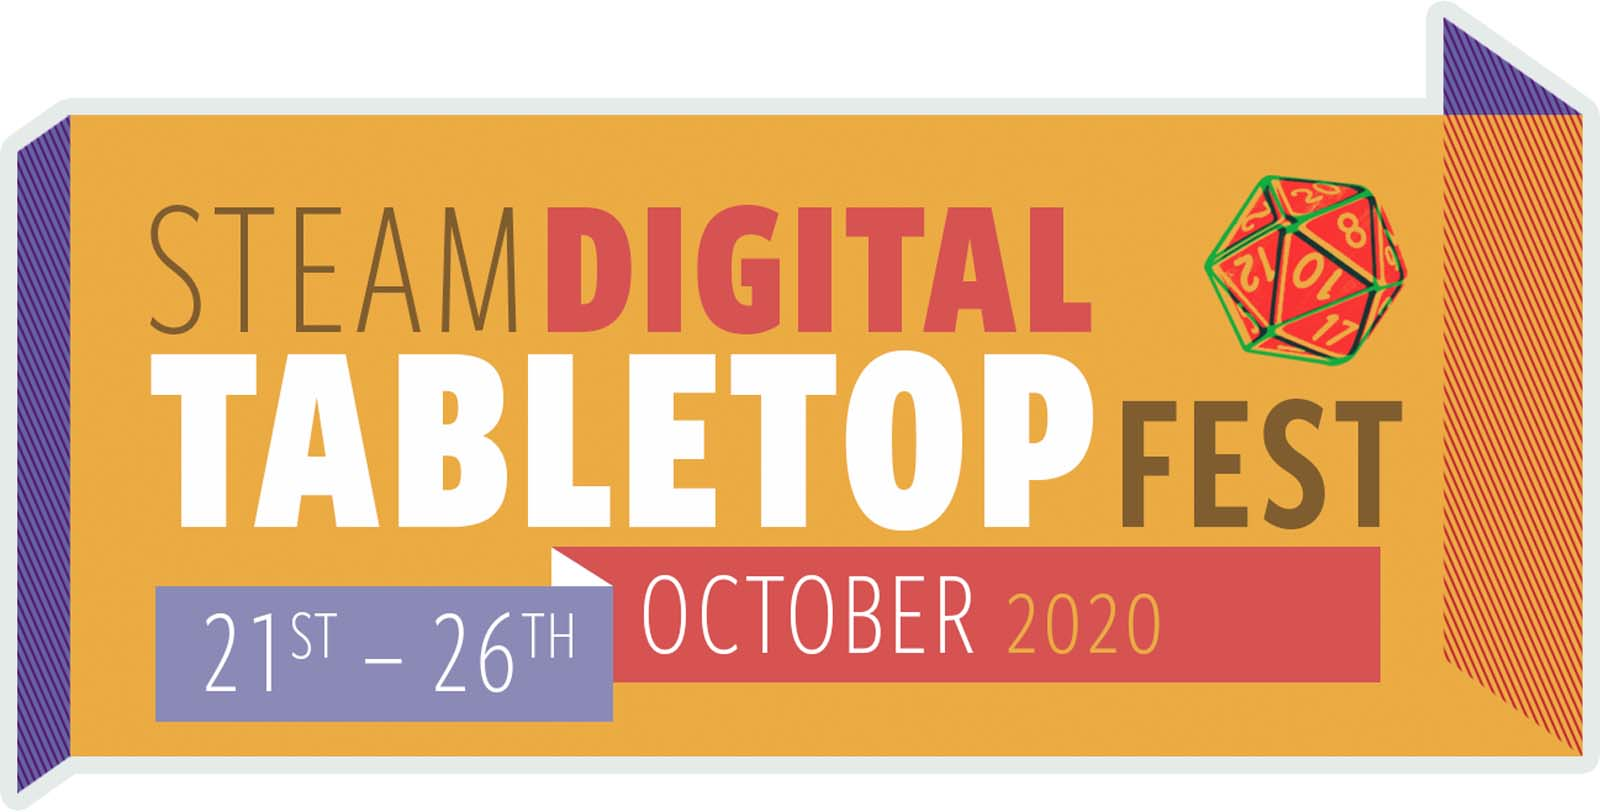 The first ever Steam Digital Tabletop Fest Has Been Unveiled For Later In The Month